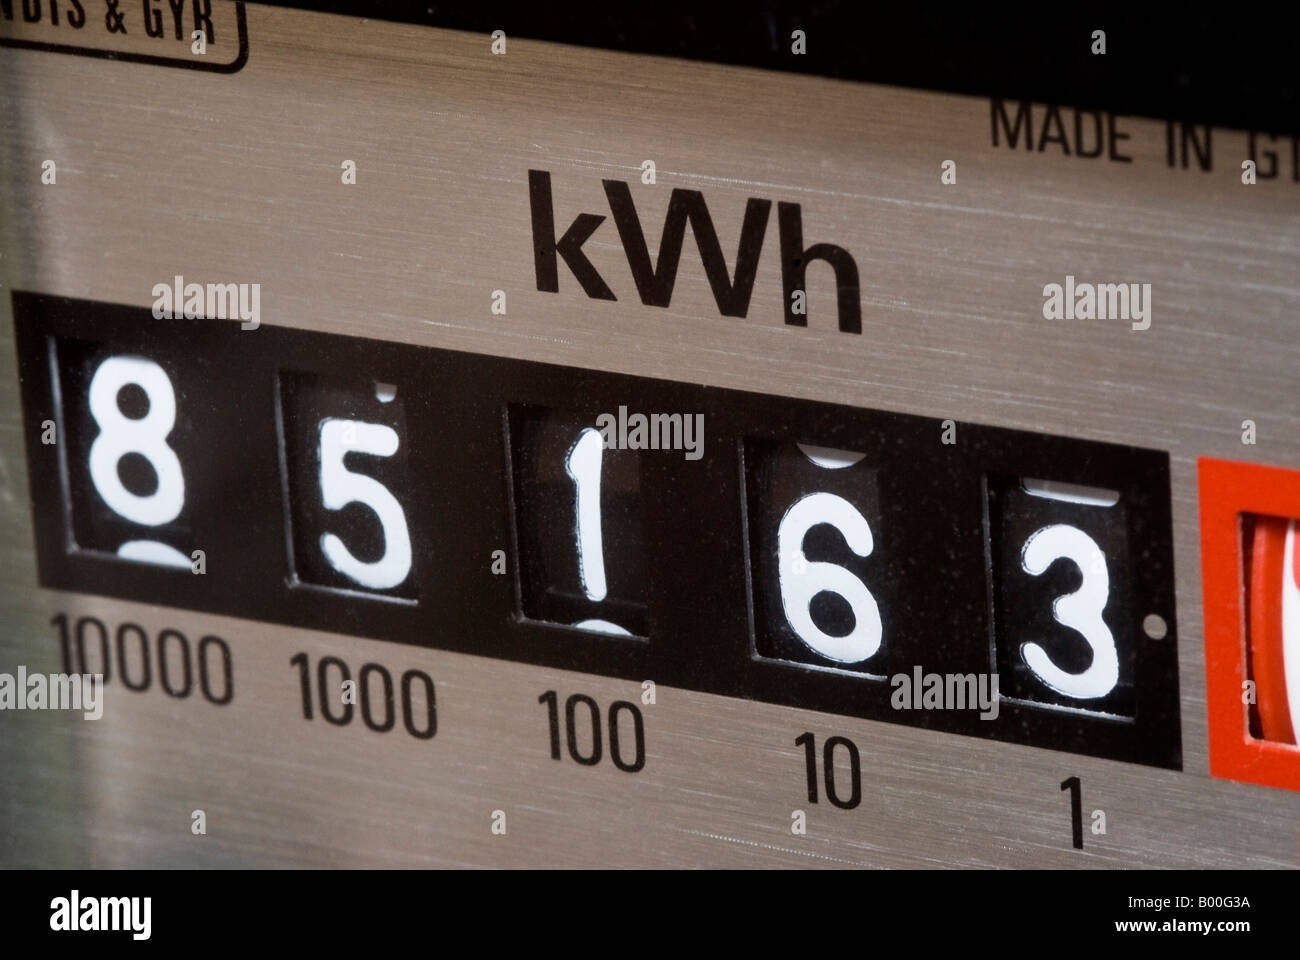 Electricity Meter Display - Stock Image